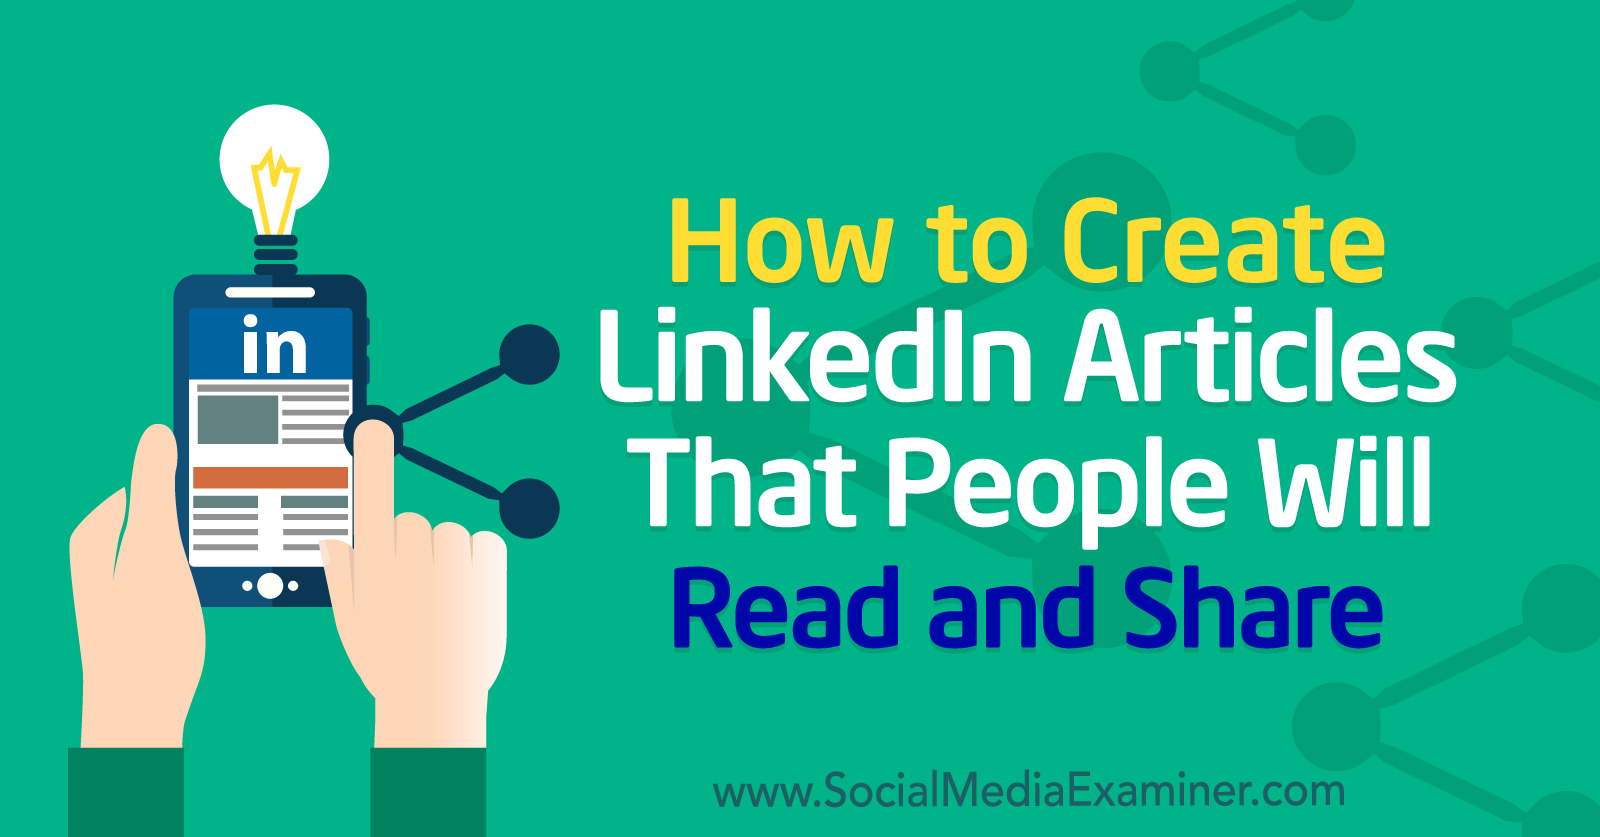 How to Create LinkedIn Articles That People Will Read and